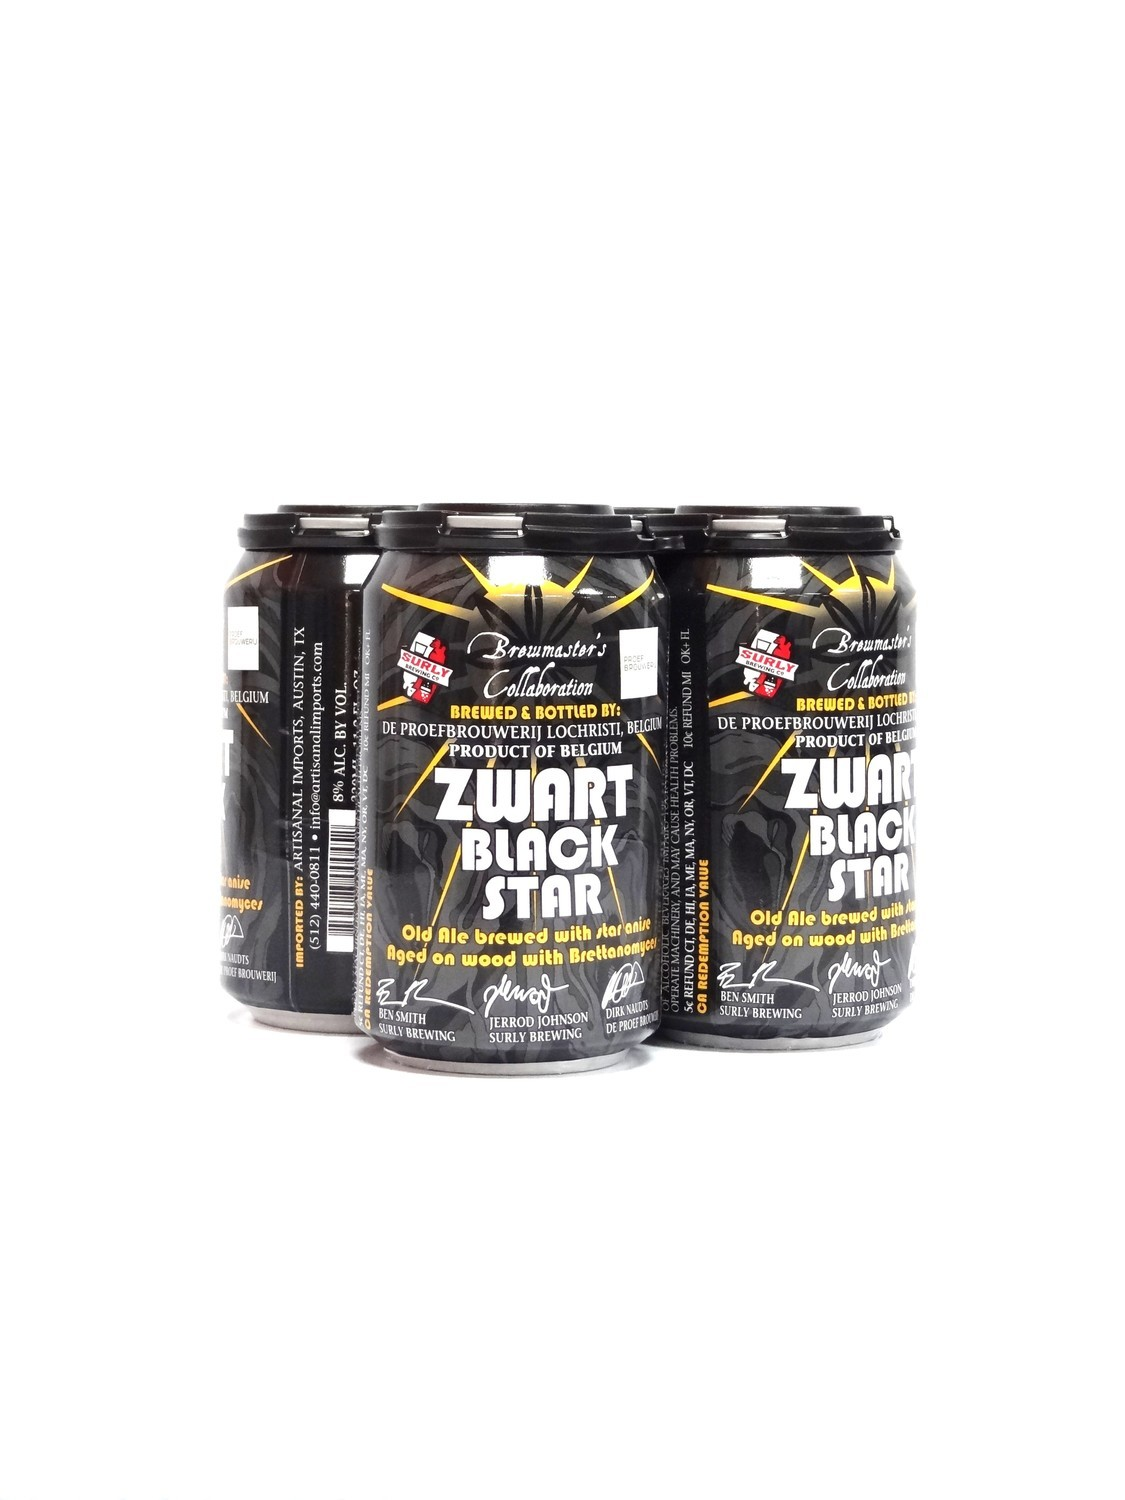 Zwart Black Star by Brewmasters collaboration Belgium product 12oz 4pk (F5-3)2